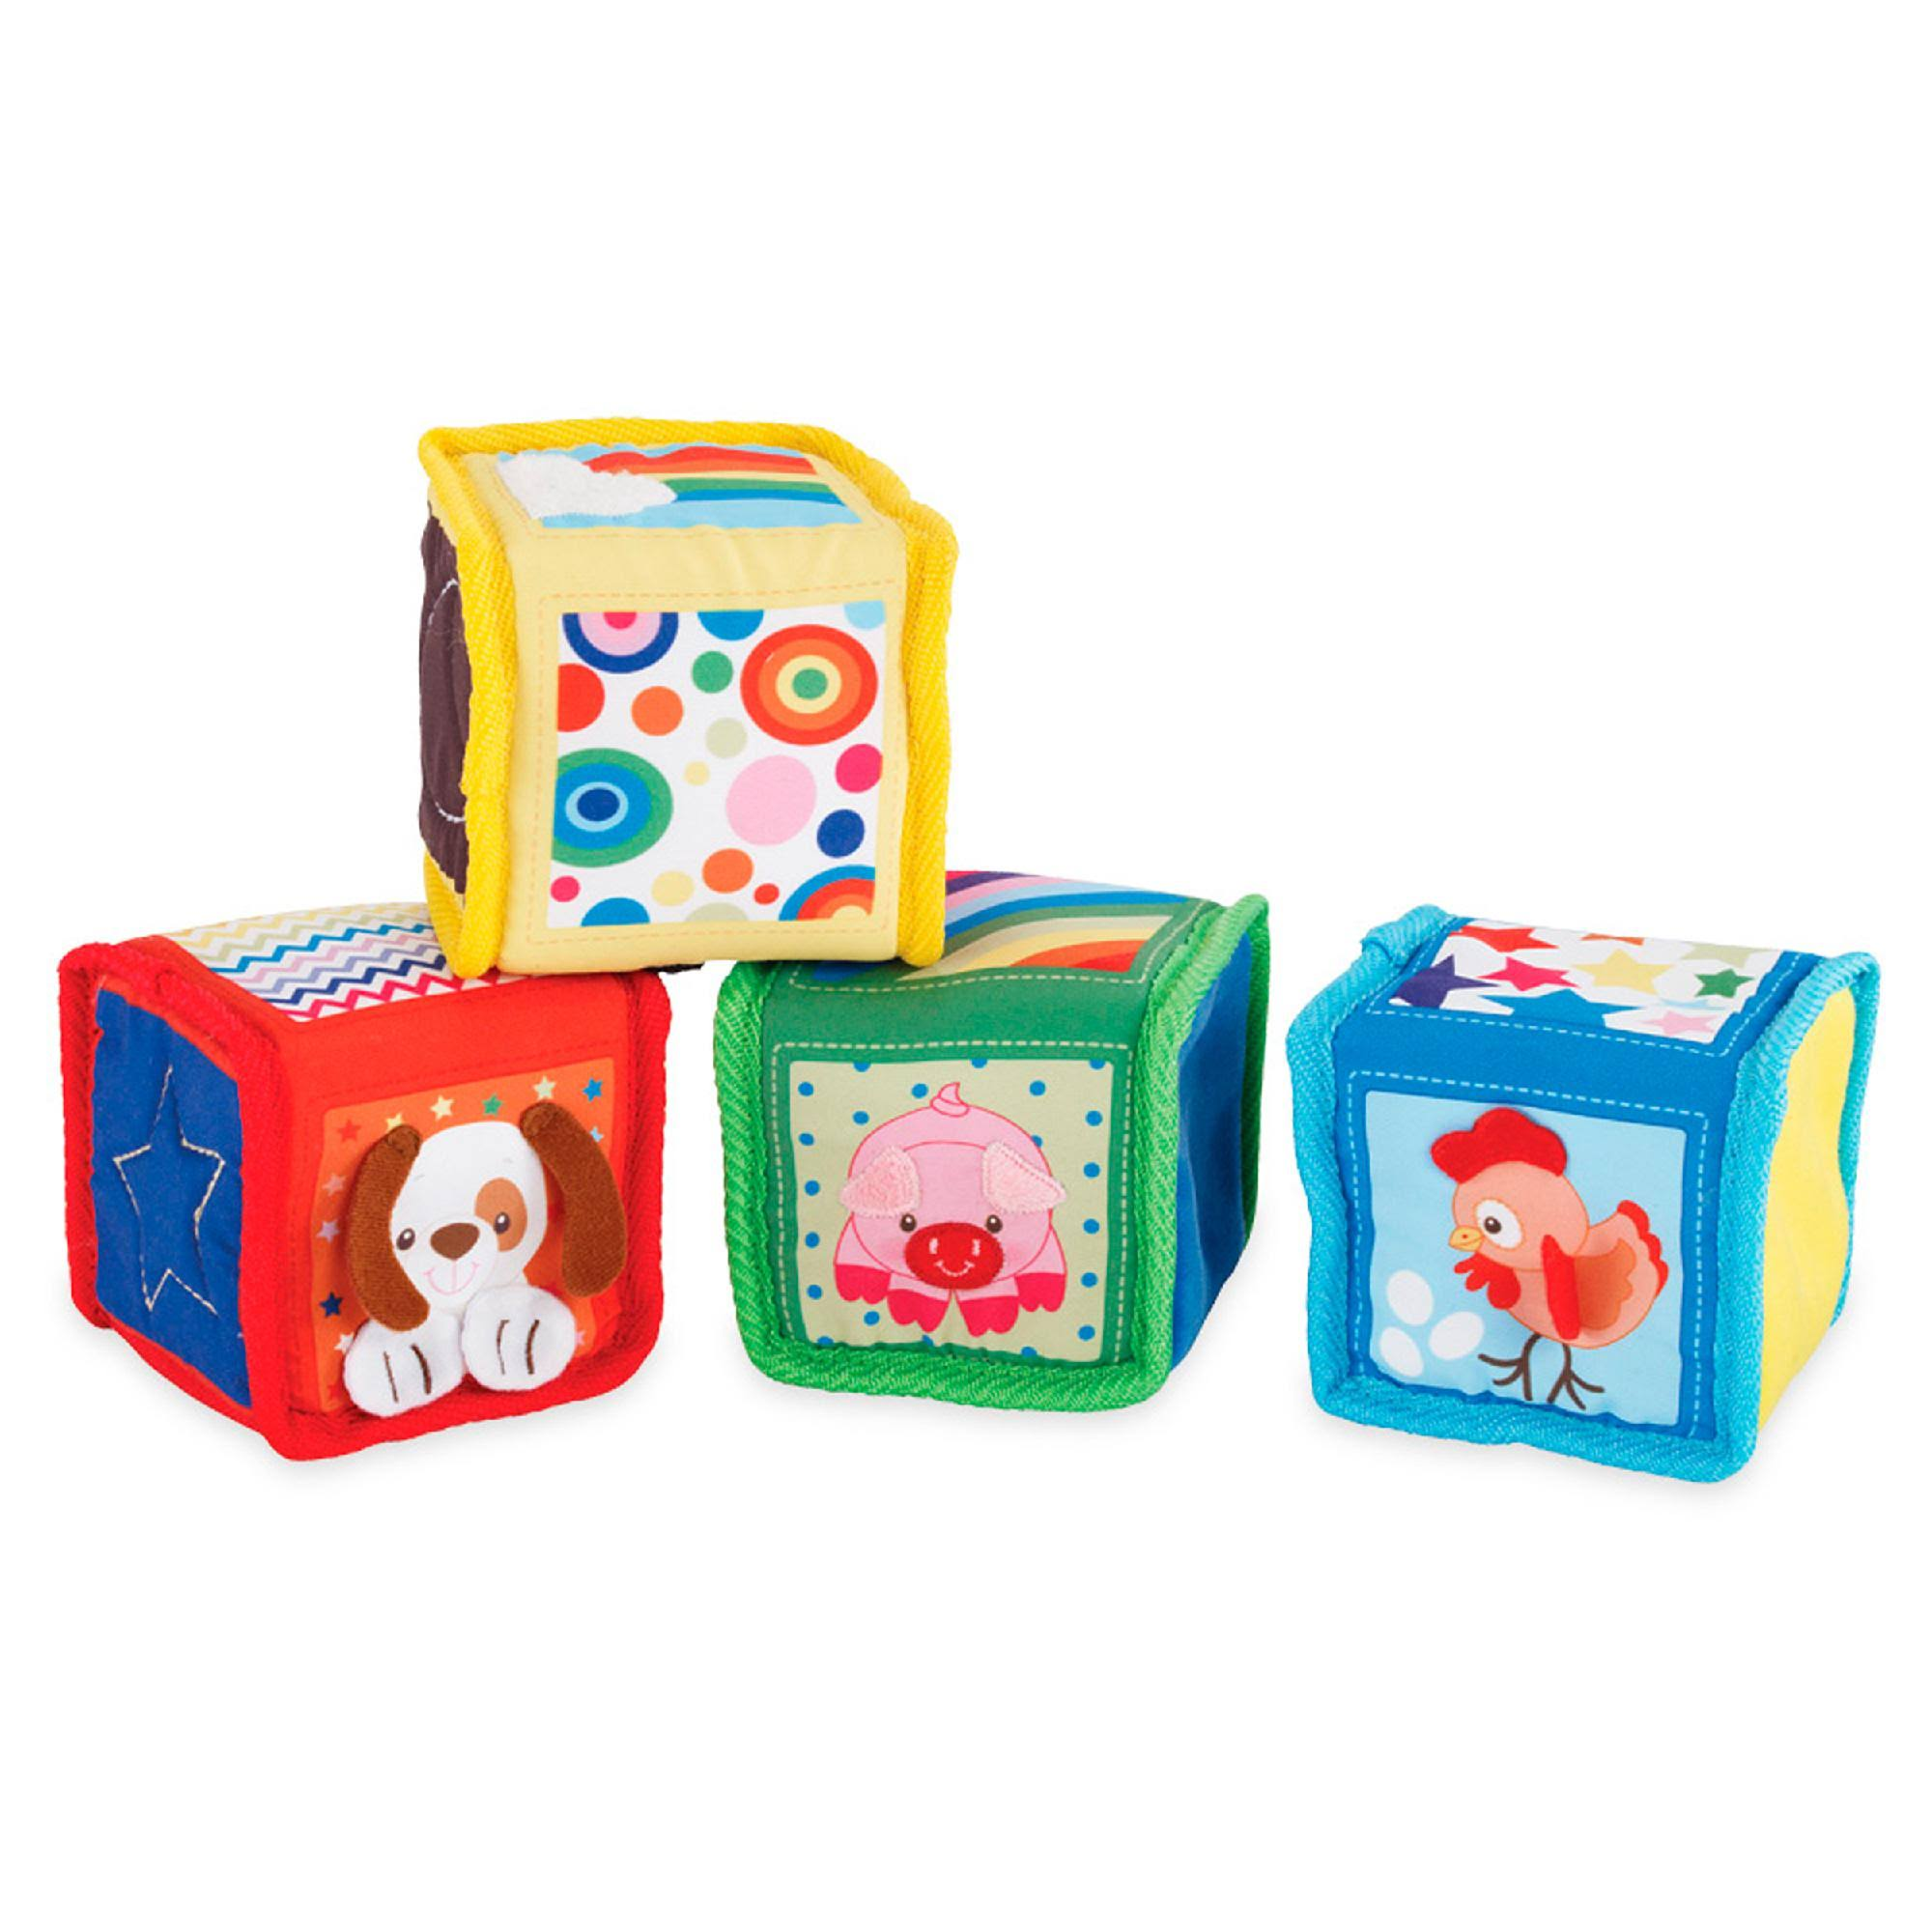 Earlyears Soft Baby Blocks Toy